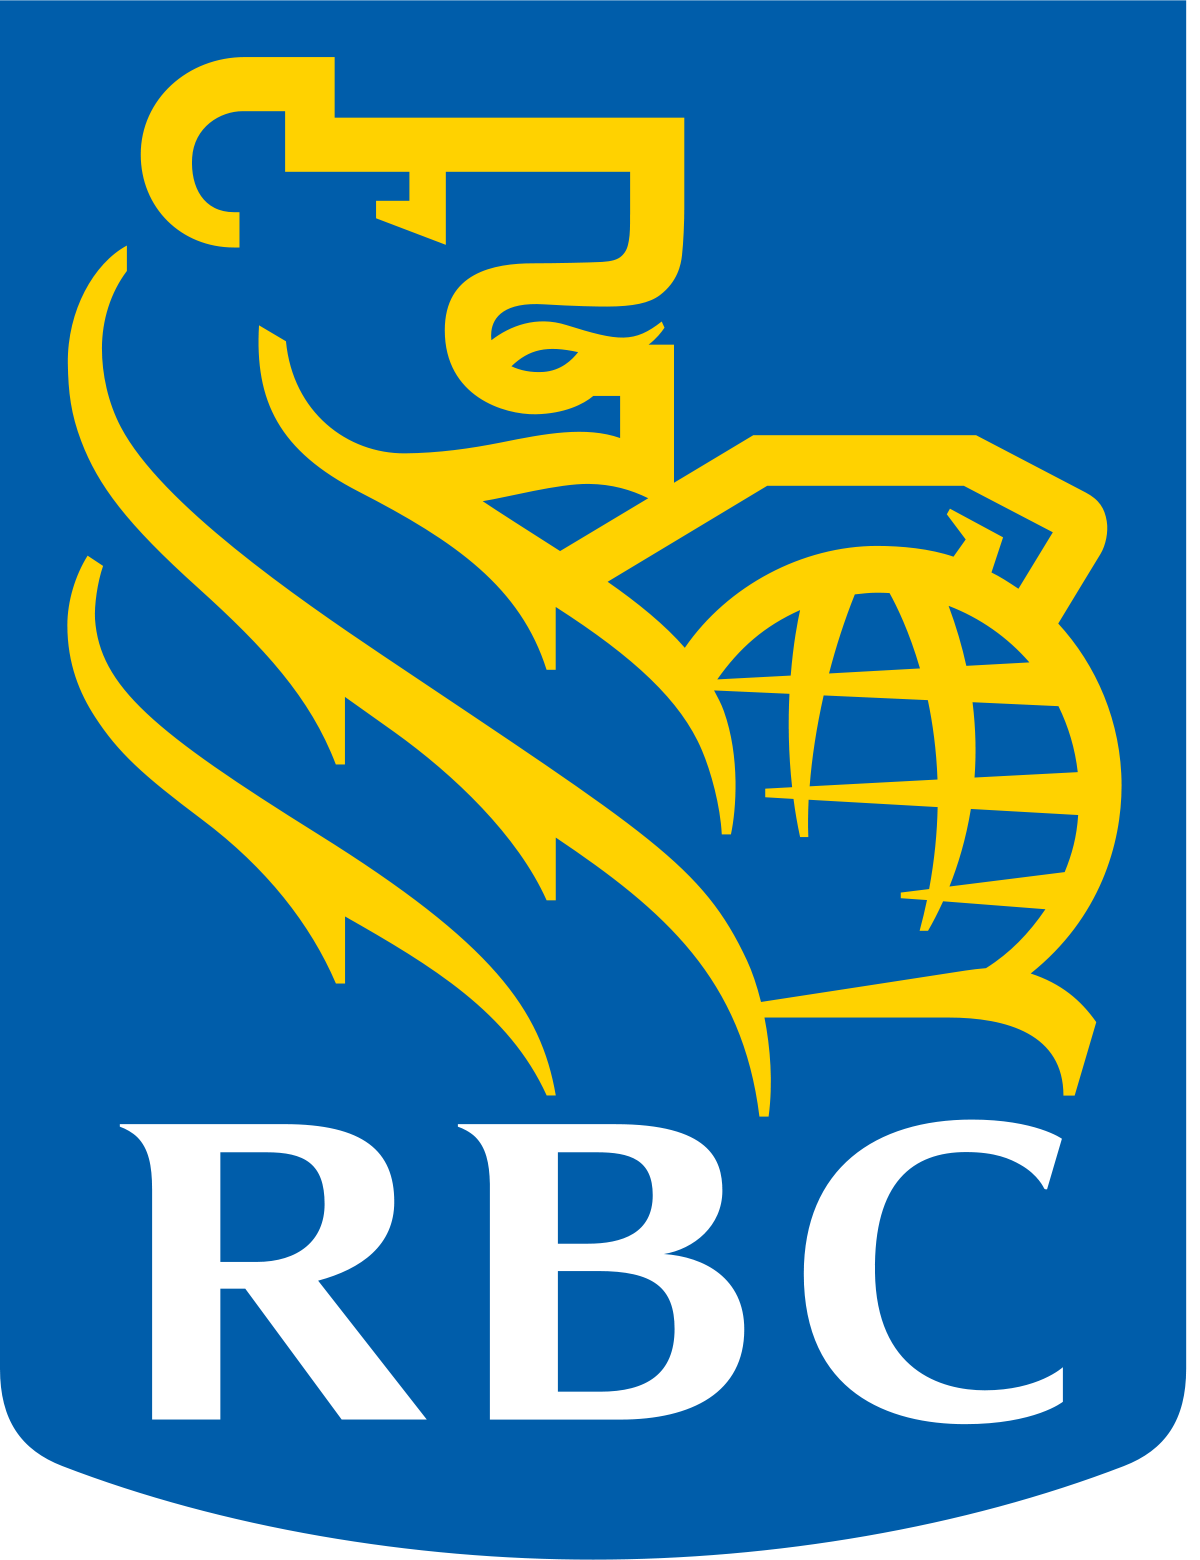 RBC Q121 net income of C$3.85bn beats forecasts